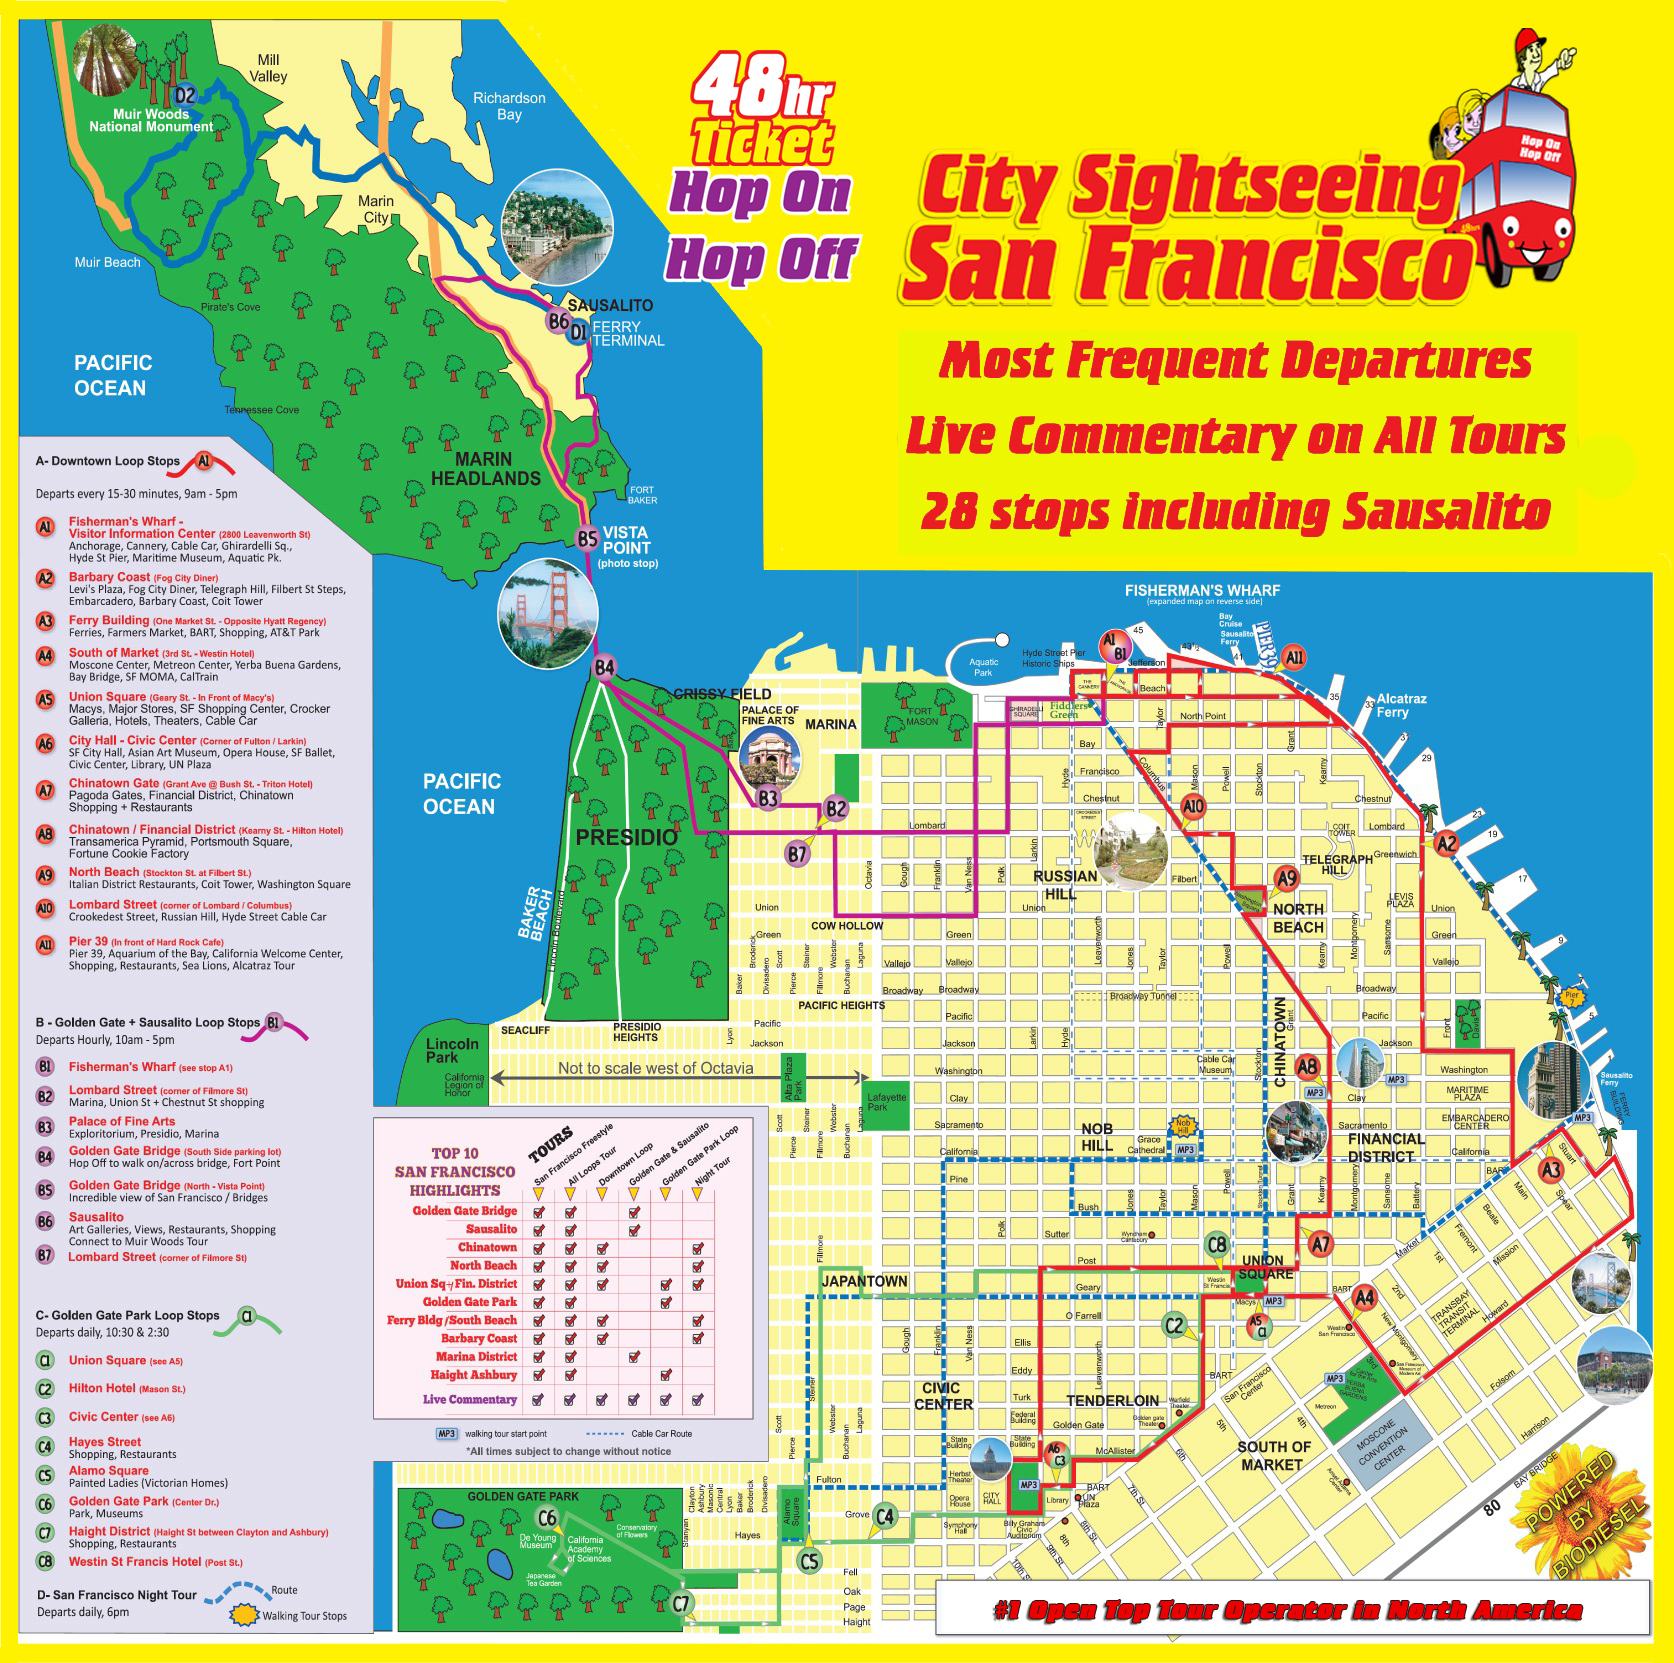 Tourist Attractions In San Francisco Map – Tourist Attractions In San Francisco Map